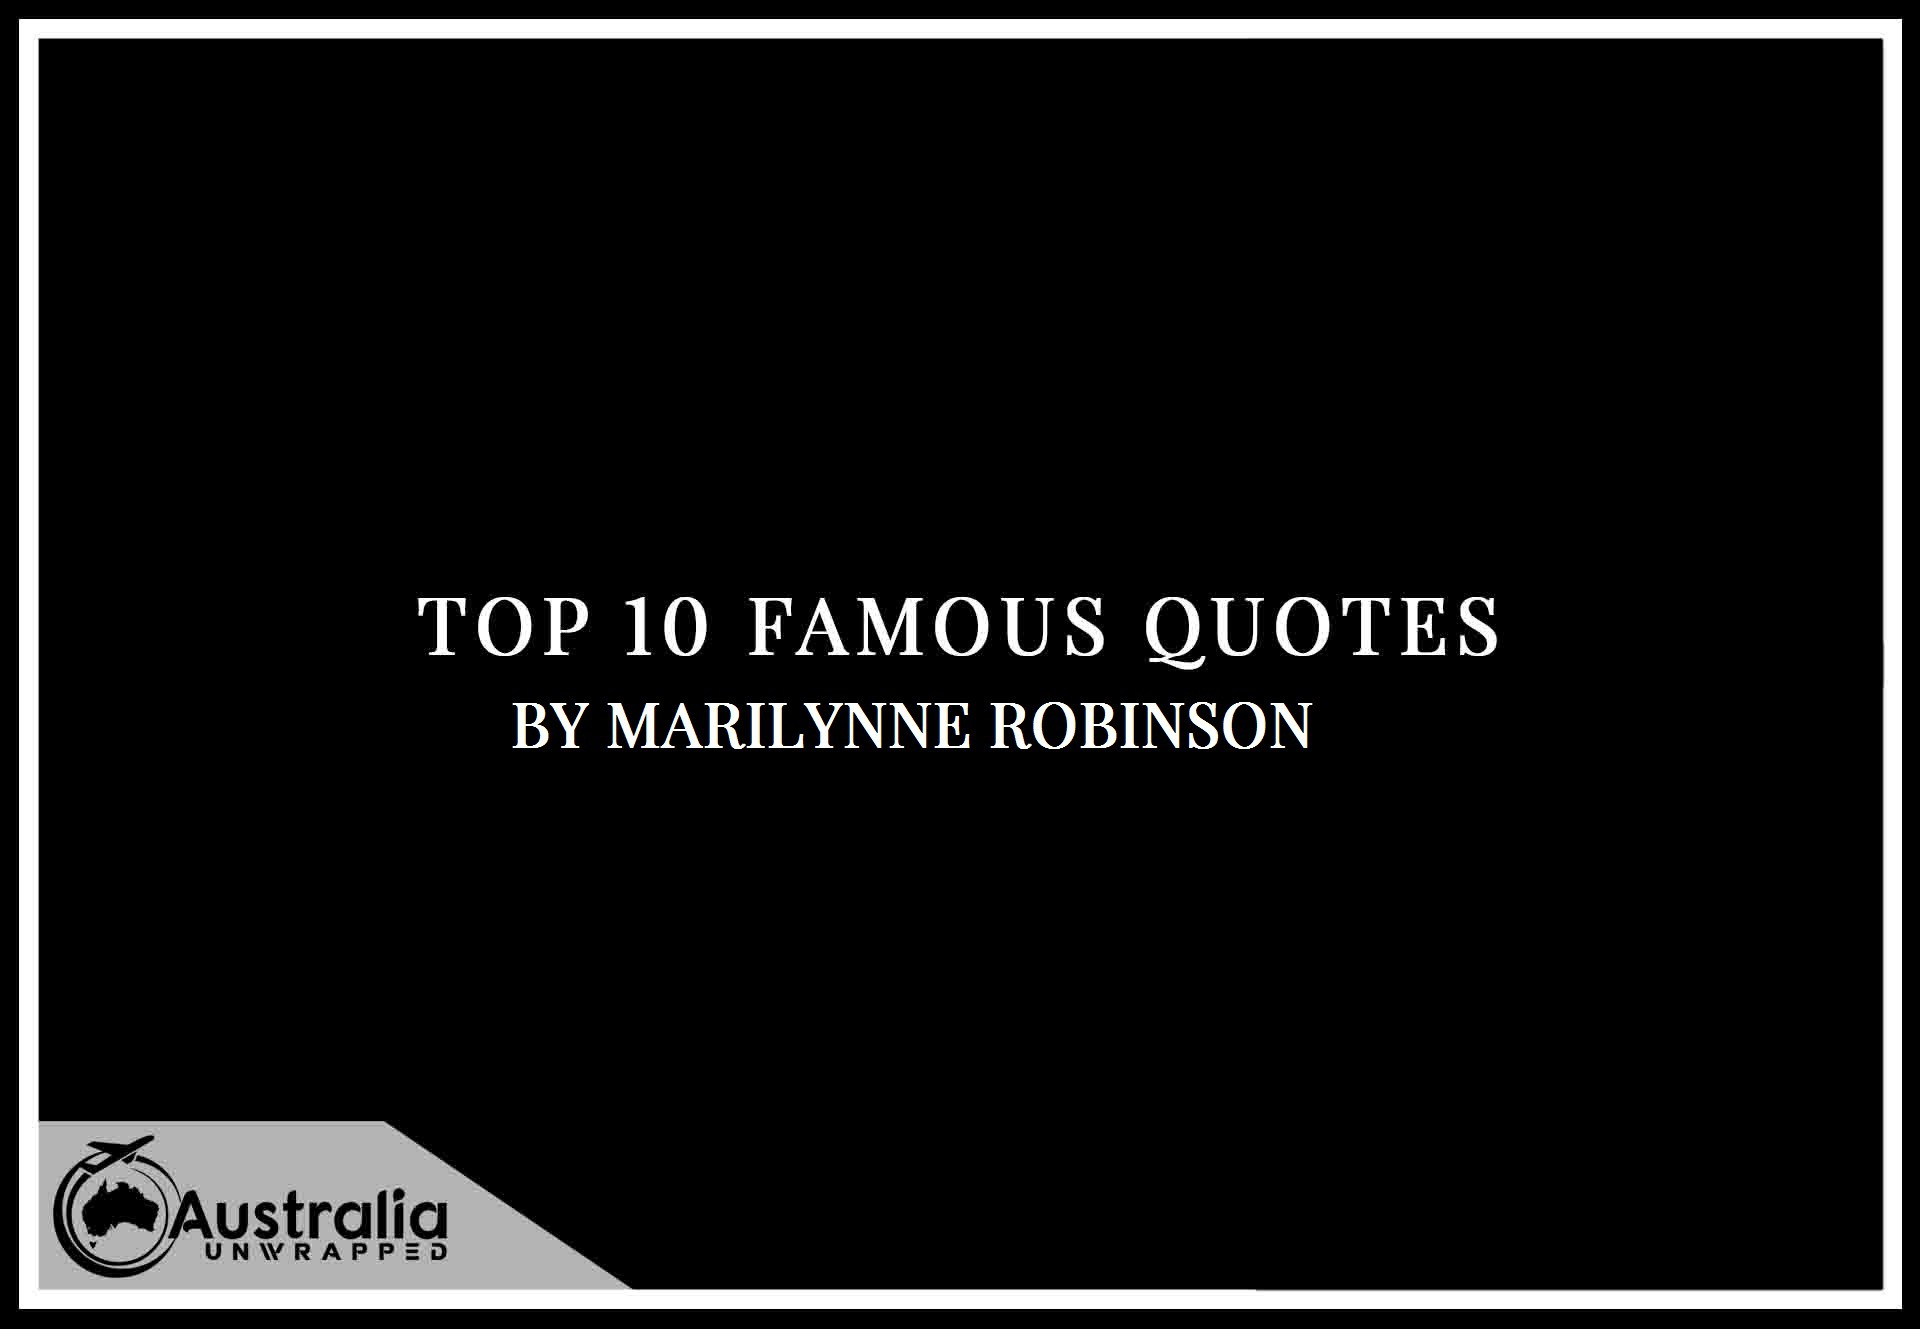 Marilynne Robinson's Top 10 Popular and Famous Quotes